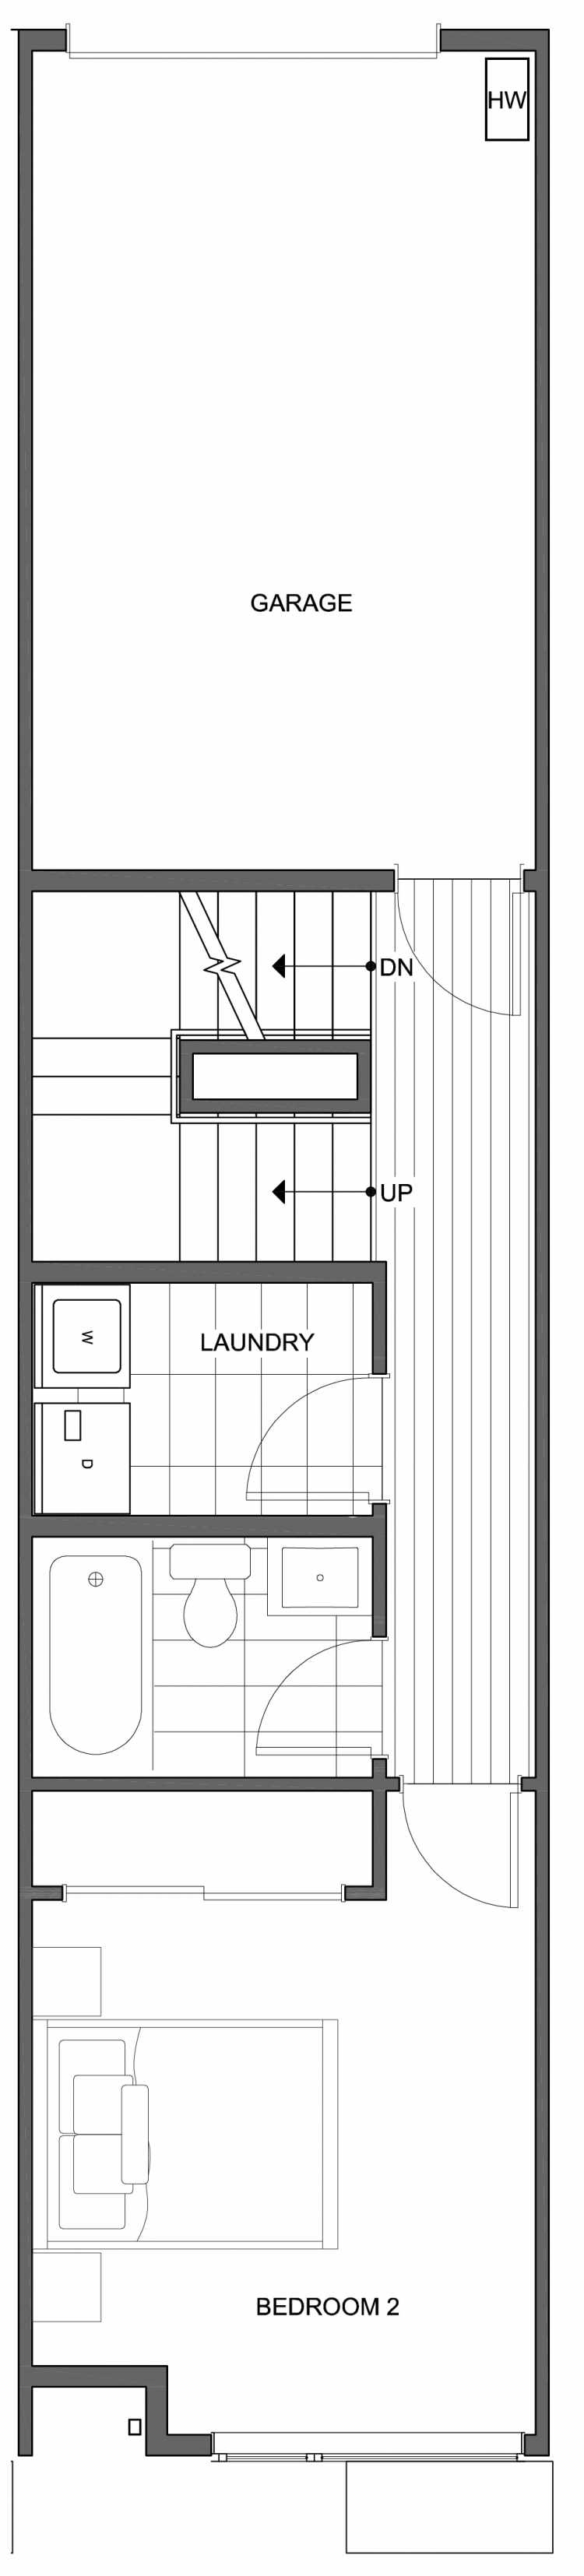 Second Floor Plan of 806E N 46th St, One of the Nino 15 East Townhomes by Isola Homes